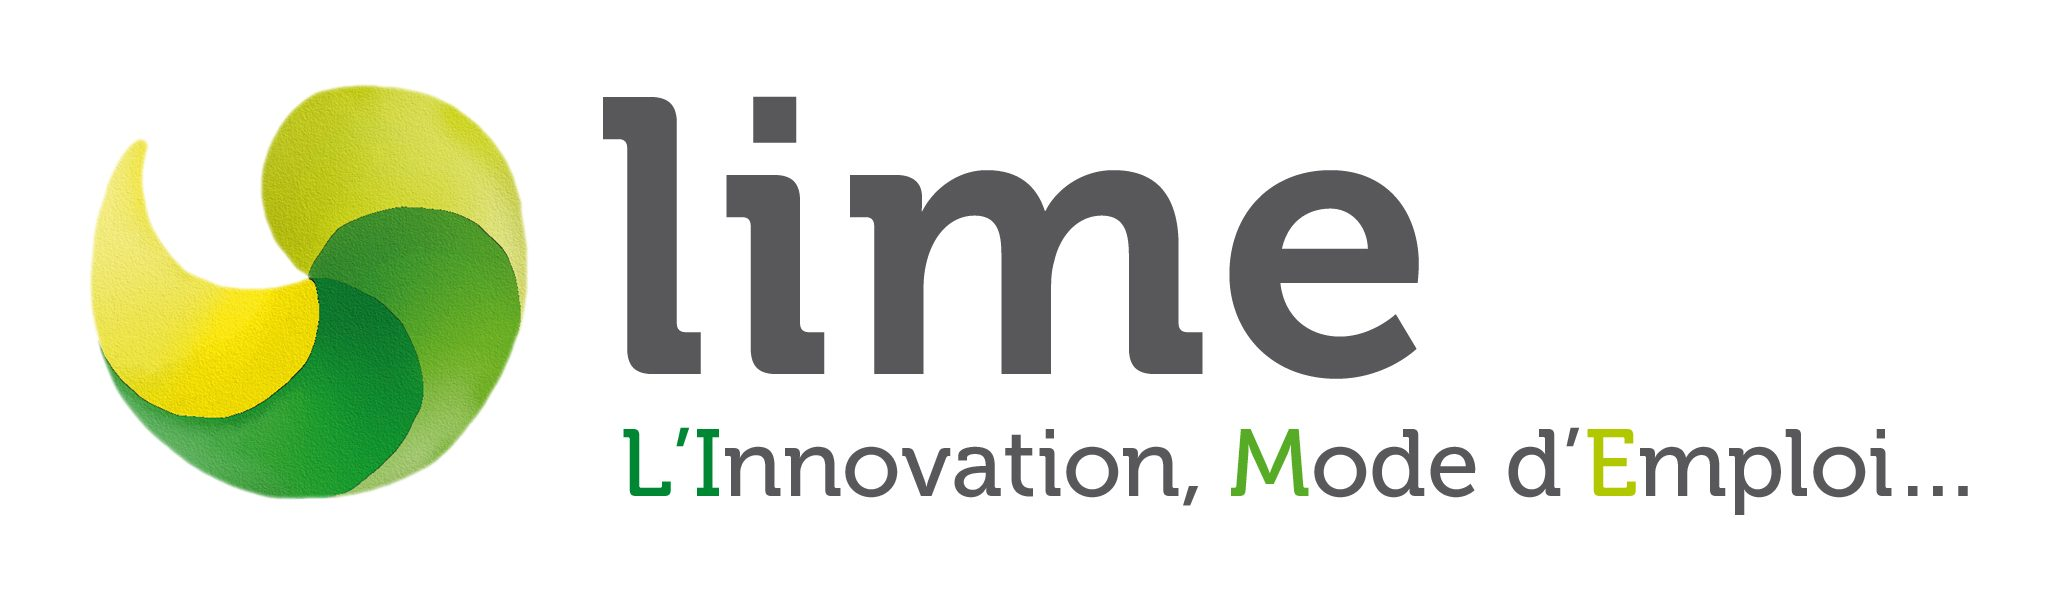 LIME Innovation